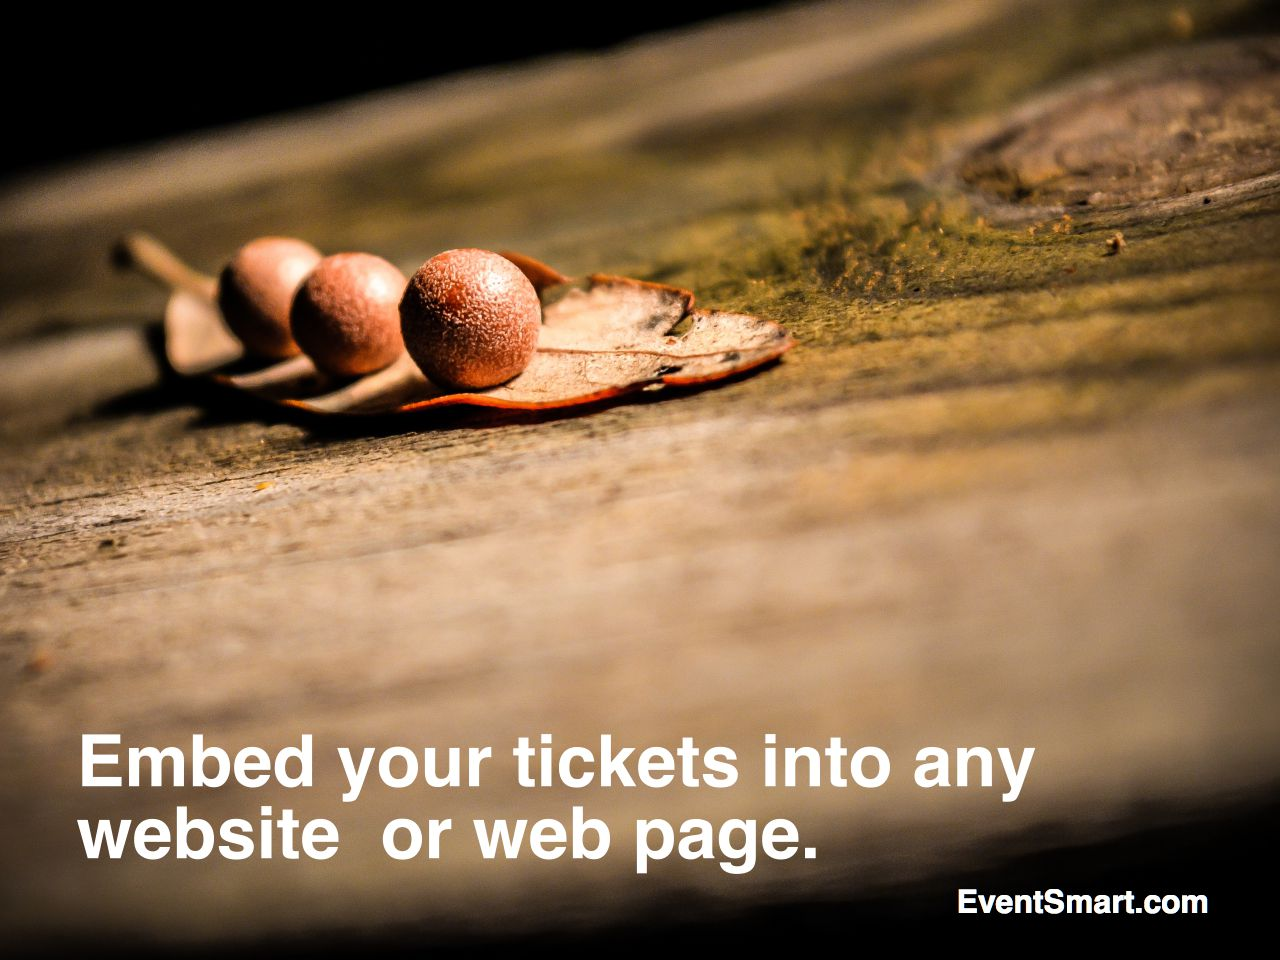 Embed your online event registration tickets into any website or web page